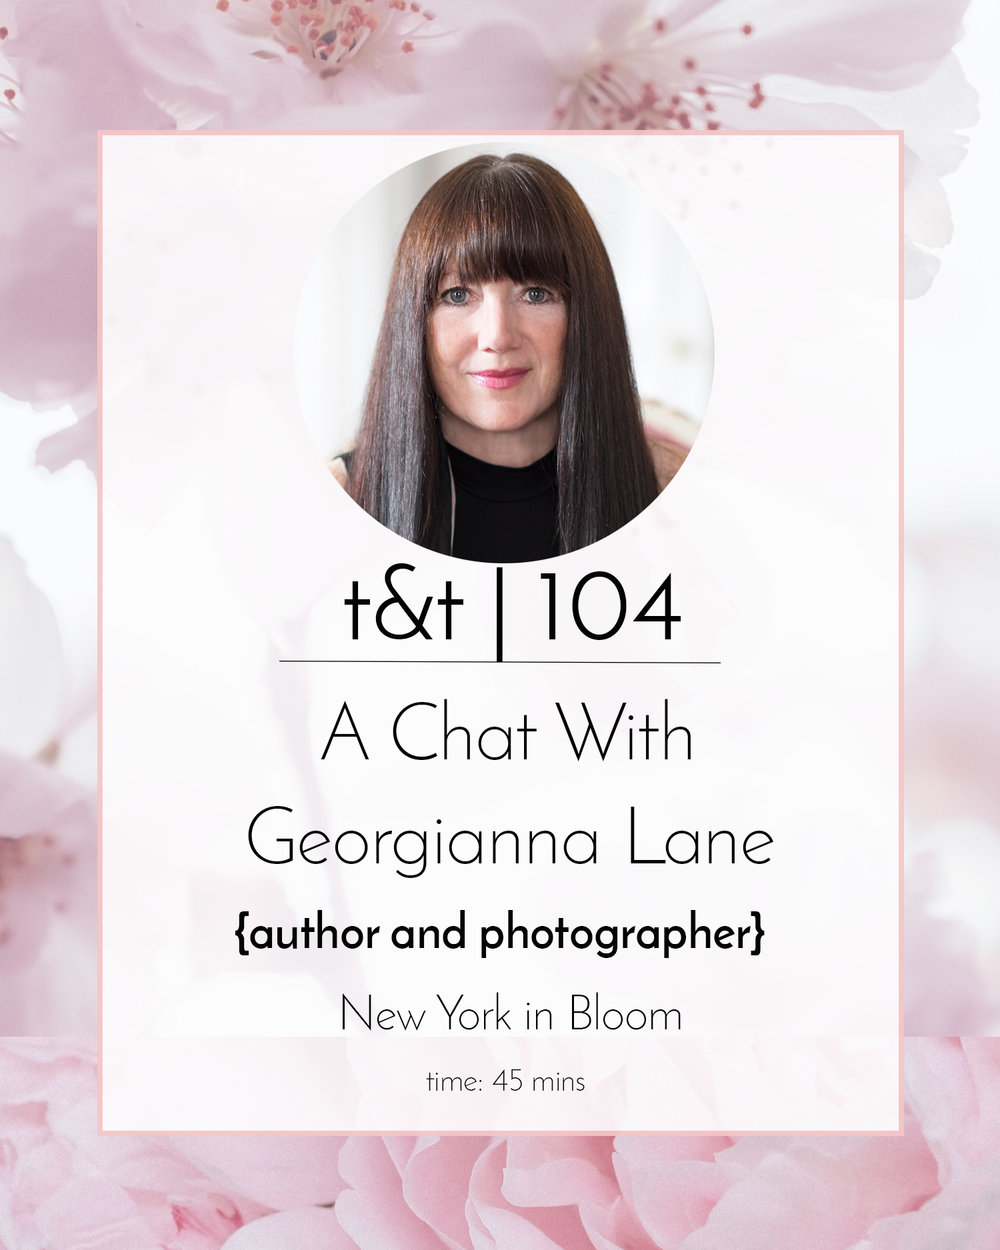 Listen to Episode 104: A Chat With Georgianna Lane